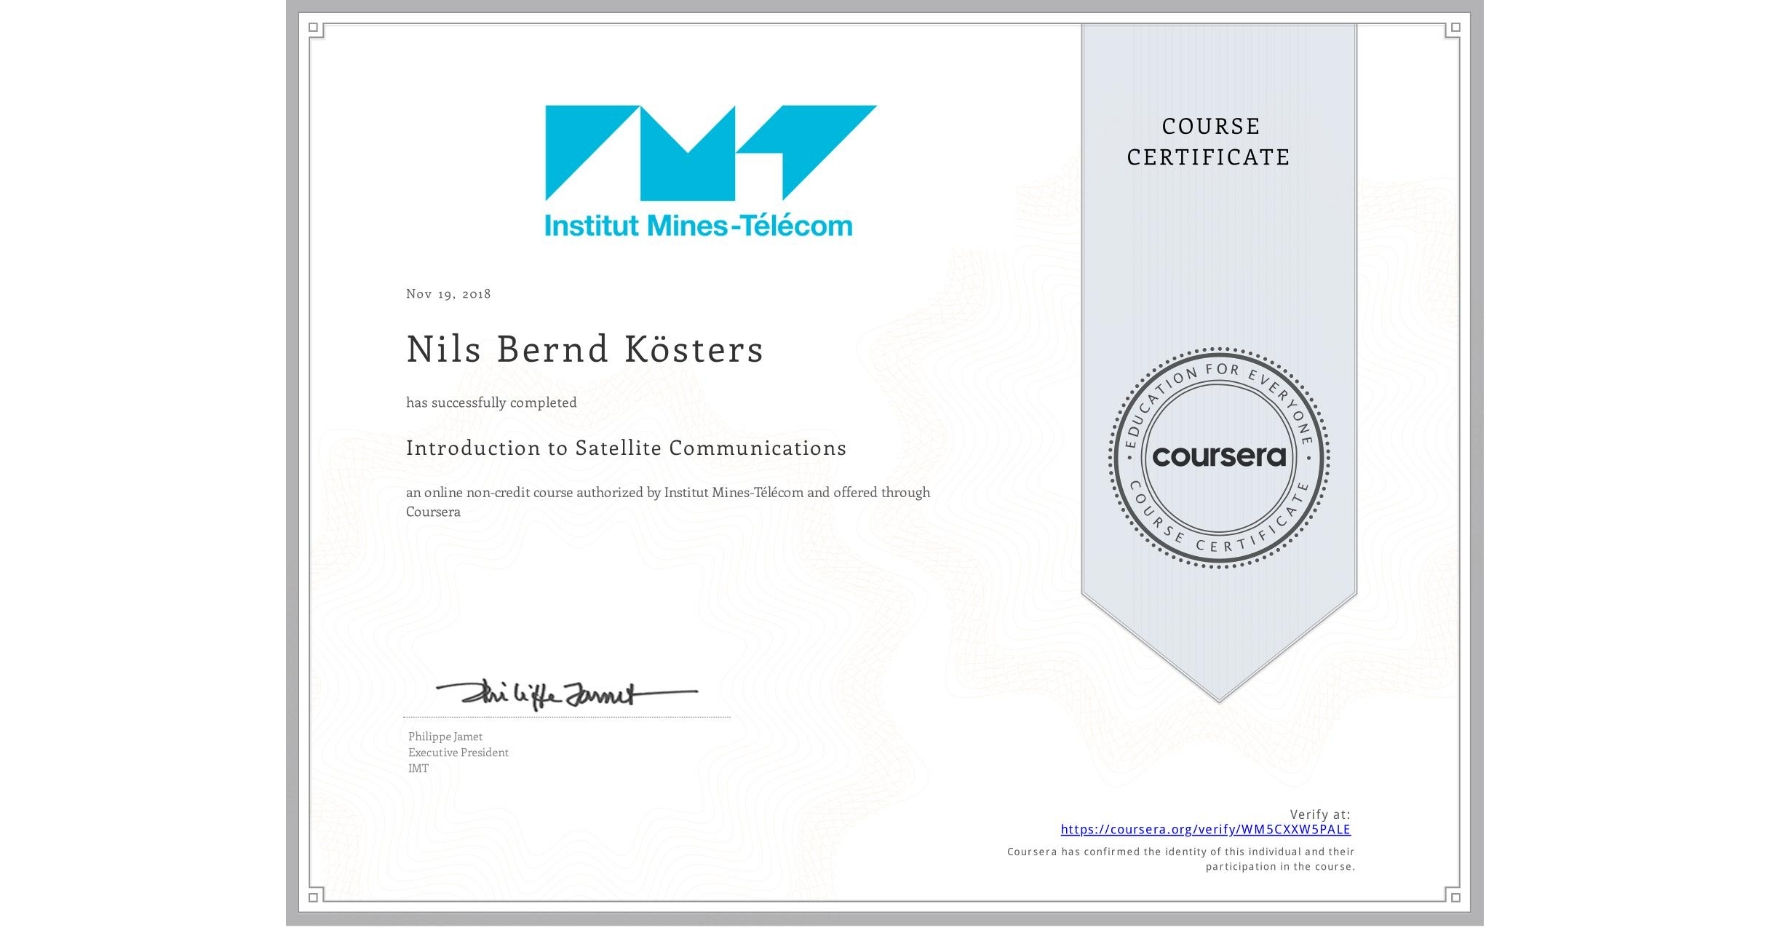 View certificate for Nils Bernd Kösters, Introduction to Satellite Communications, an online non-credit course authorized by Institut Mines-Télécom and offered through Coursera